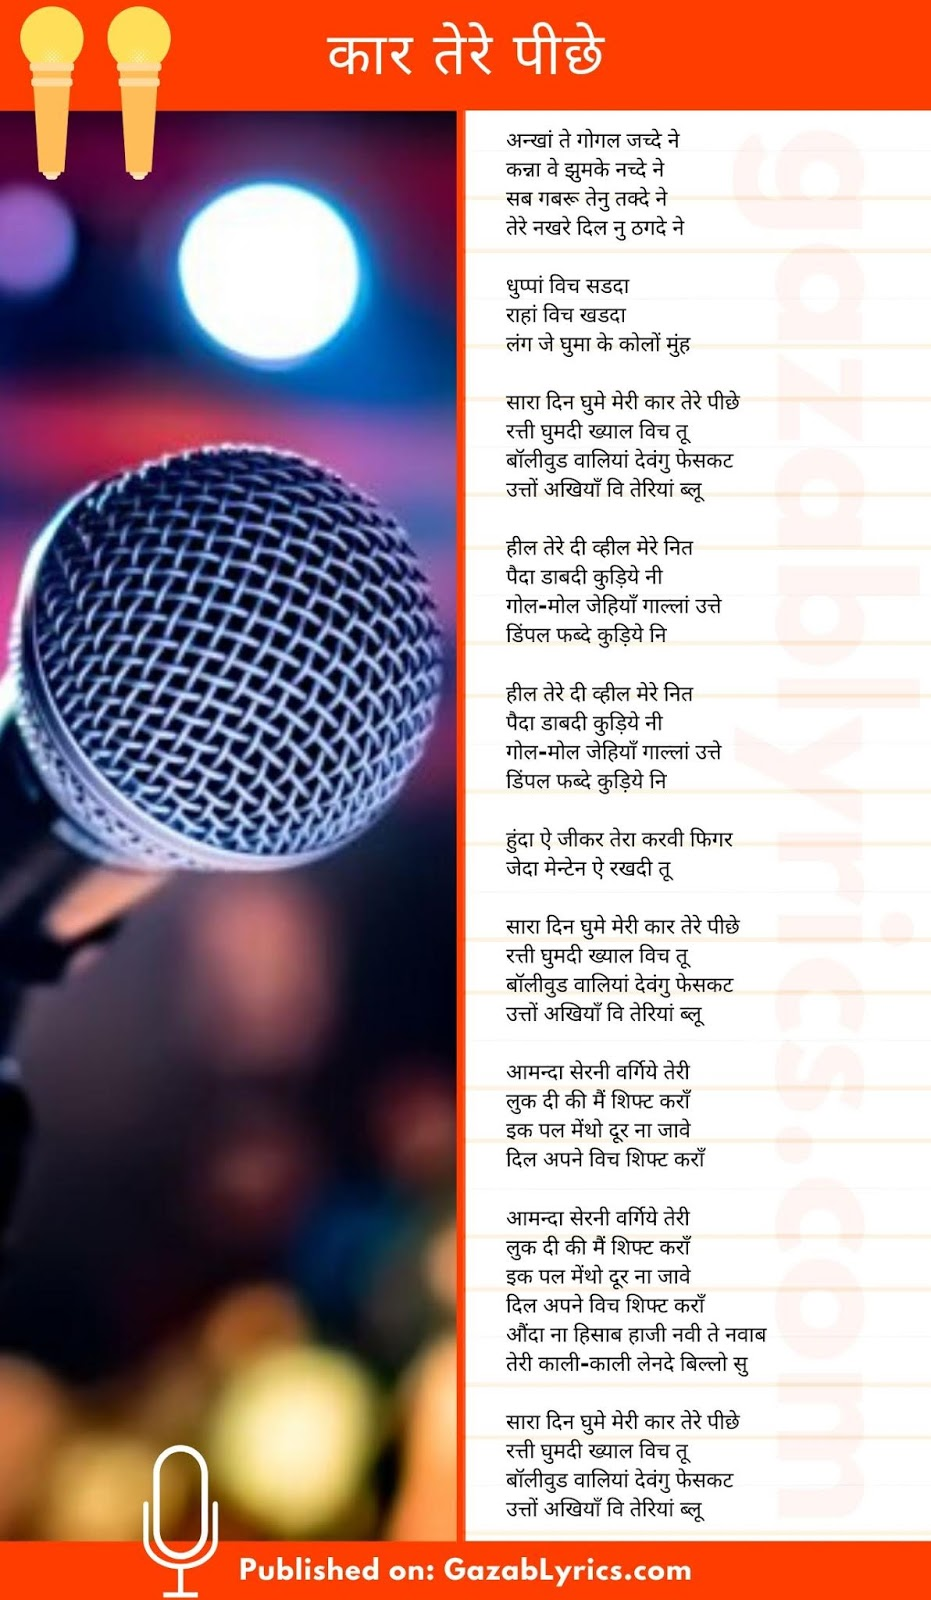 Car Tere Piche song lyrics image